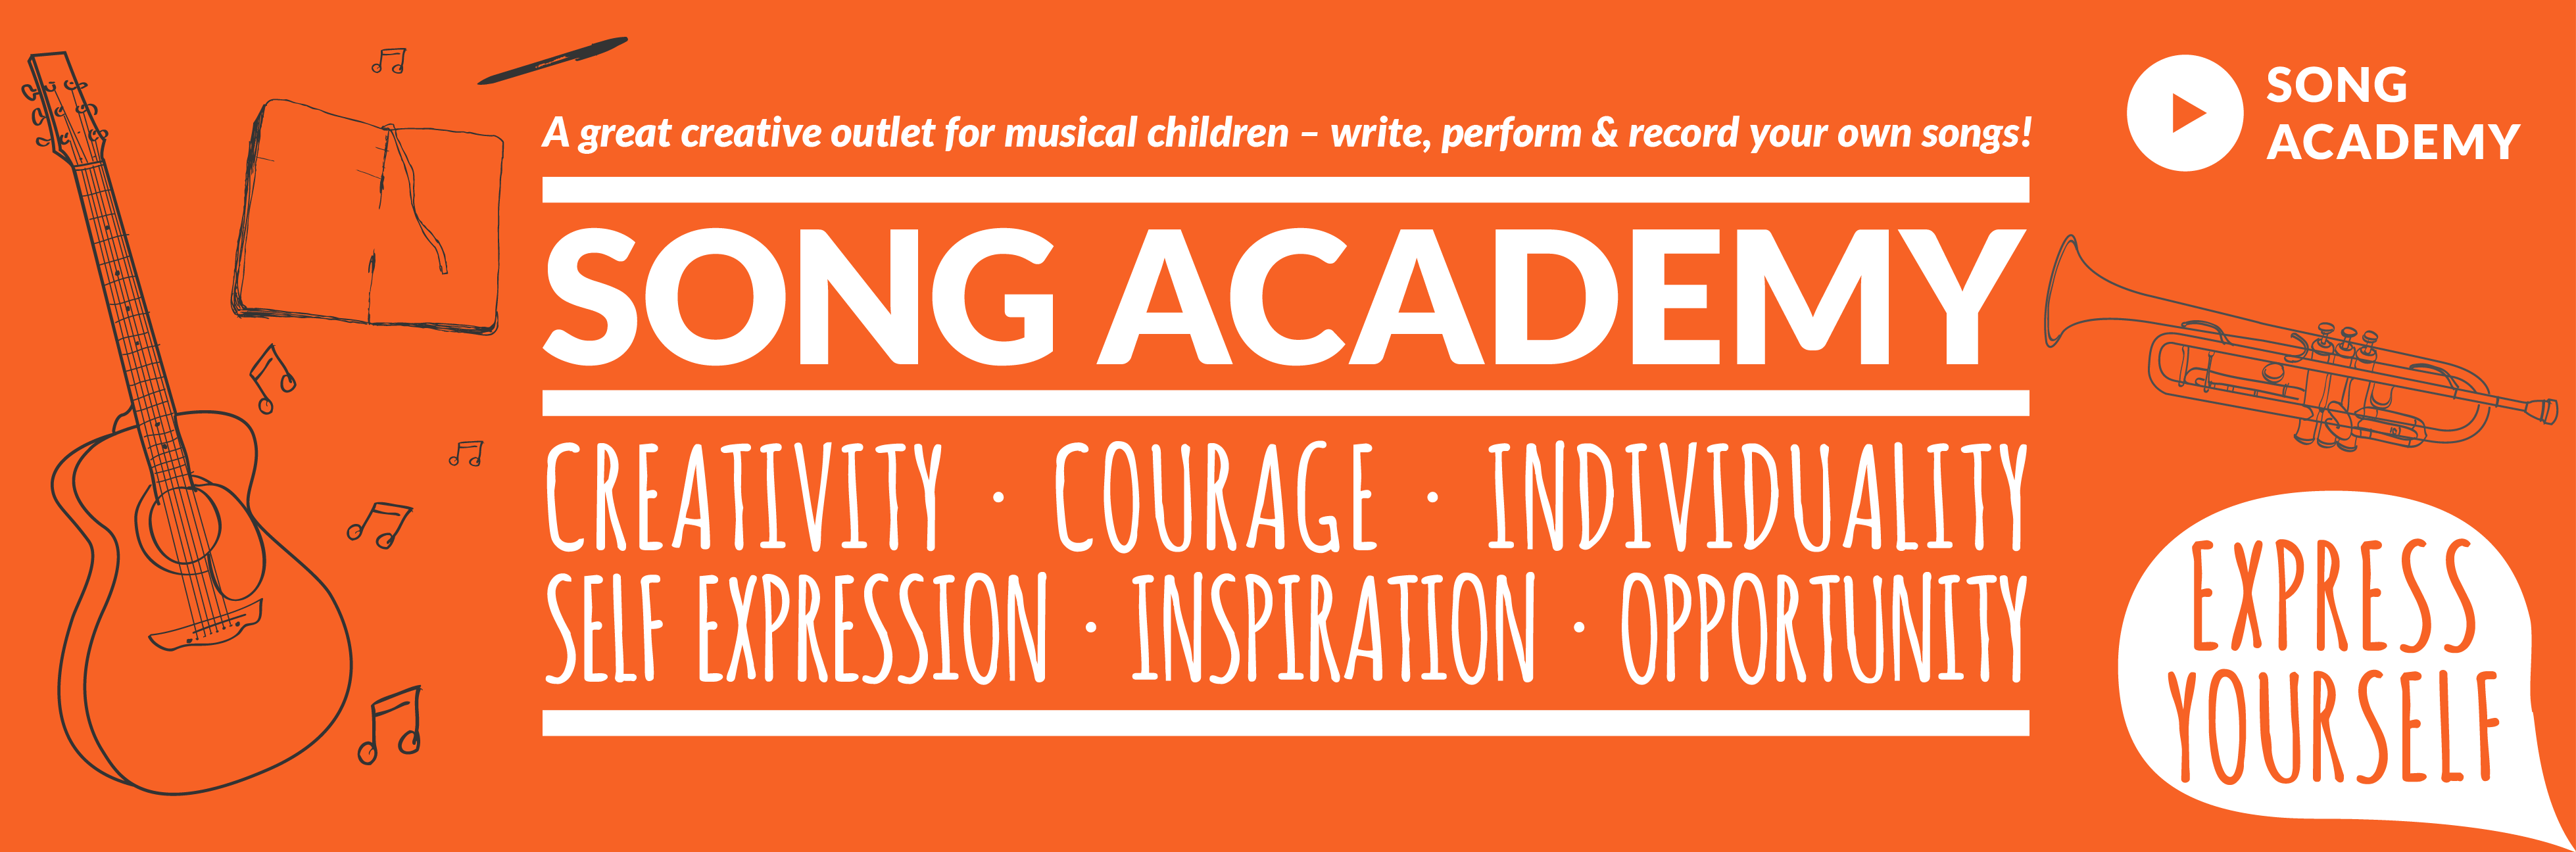 Song Academy | After school songwriting & singing club for kids | London